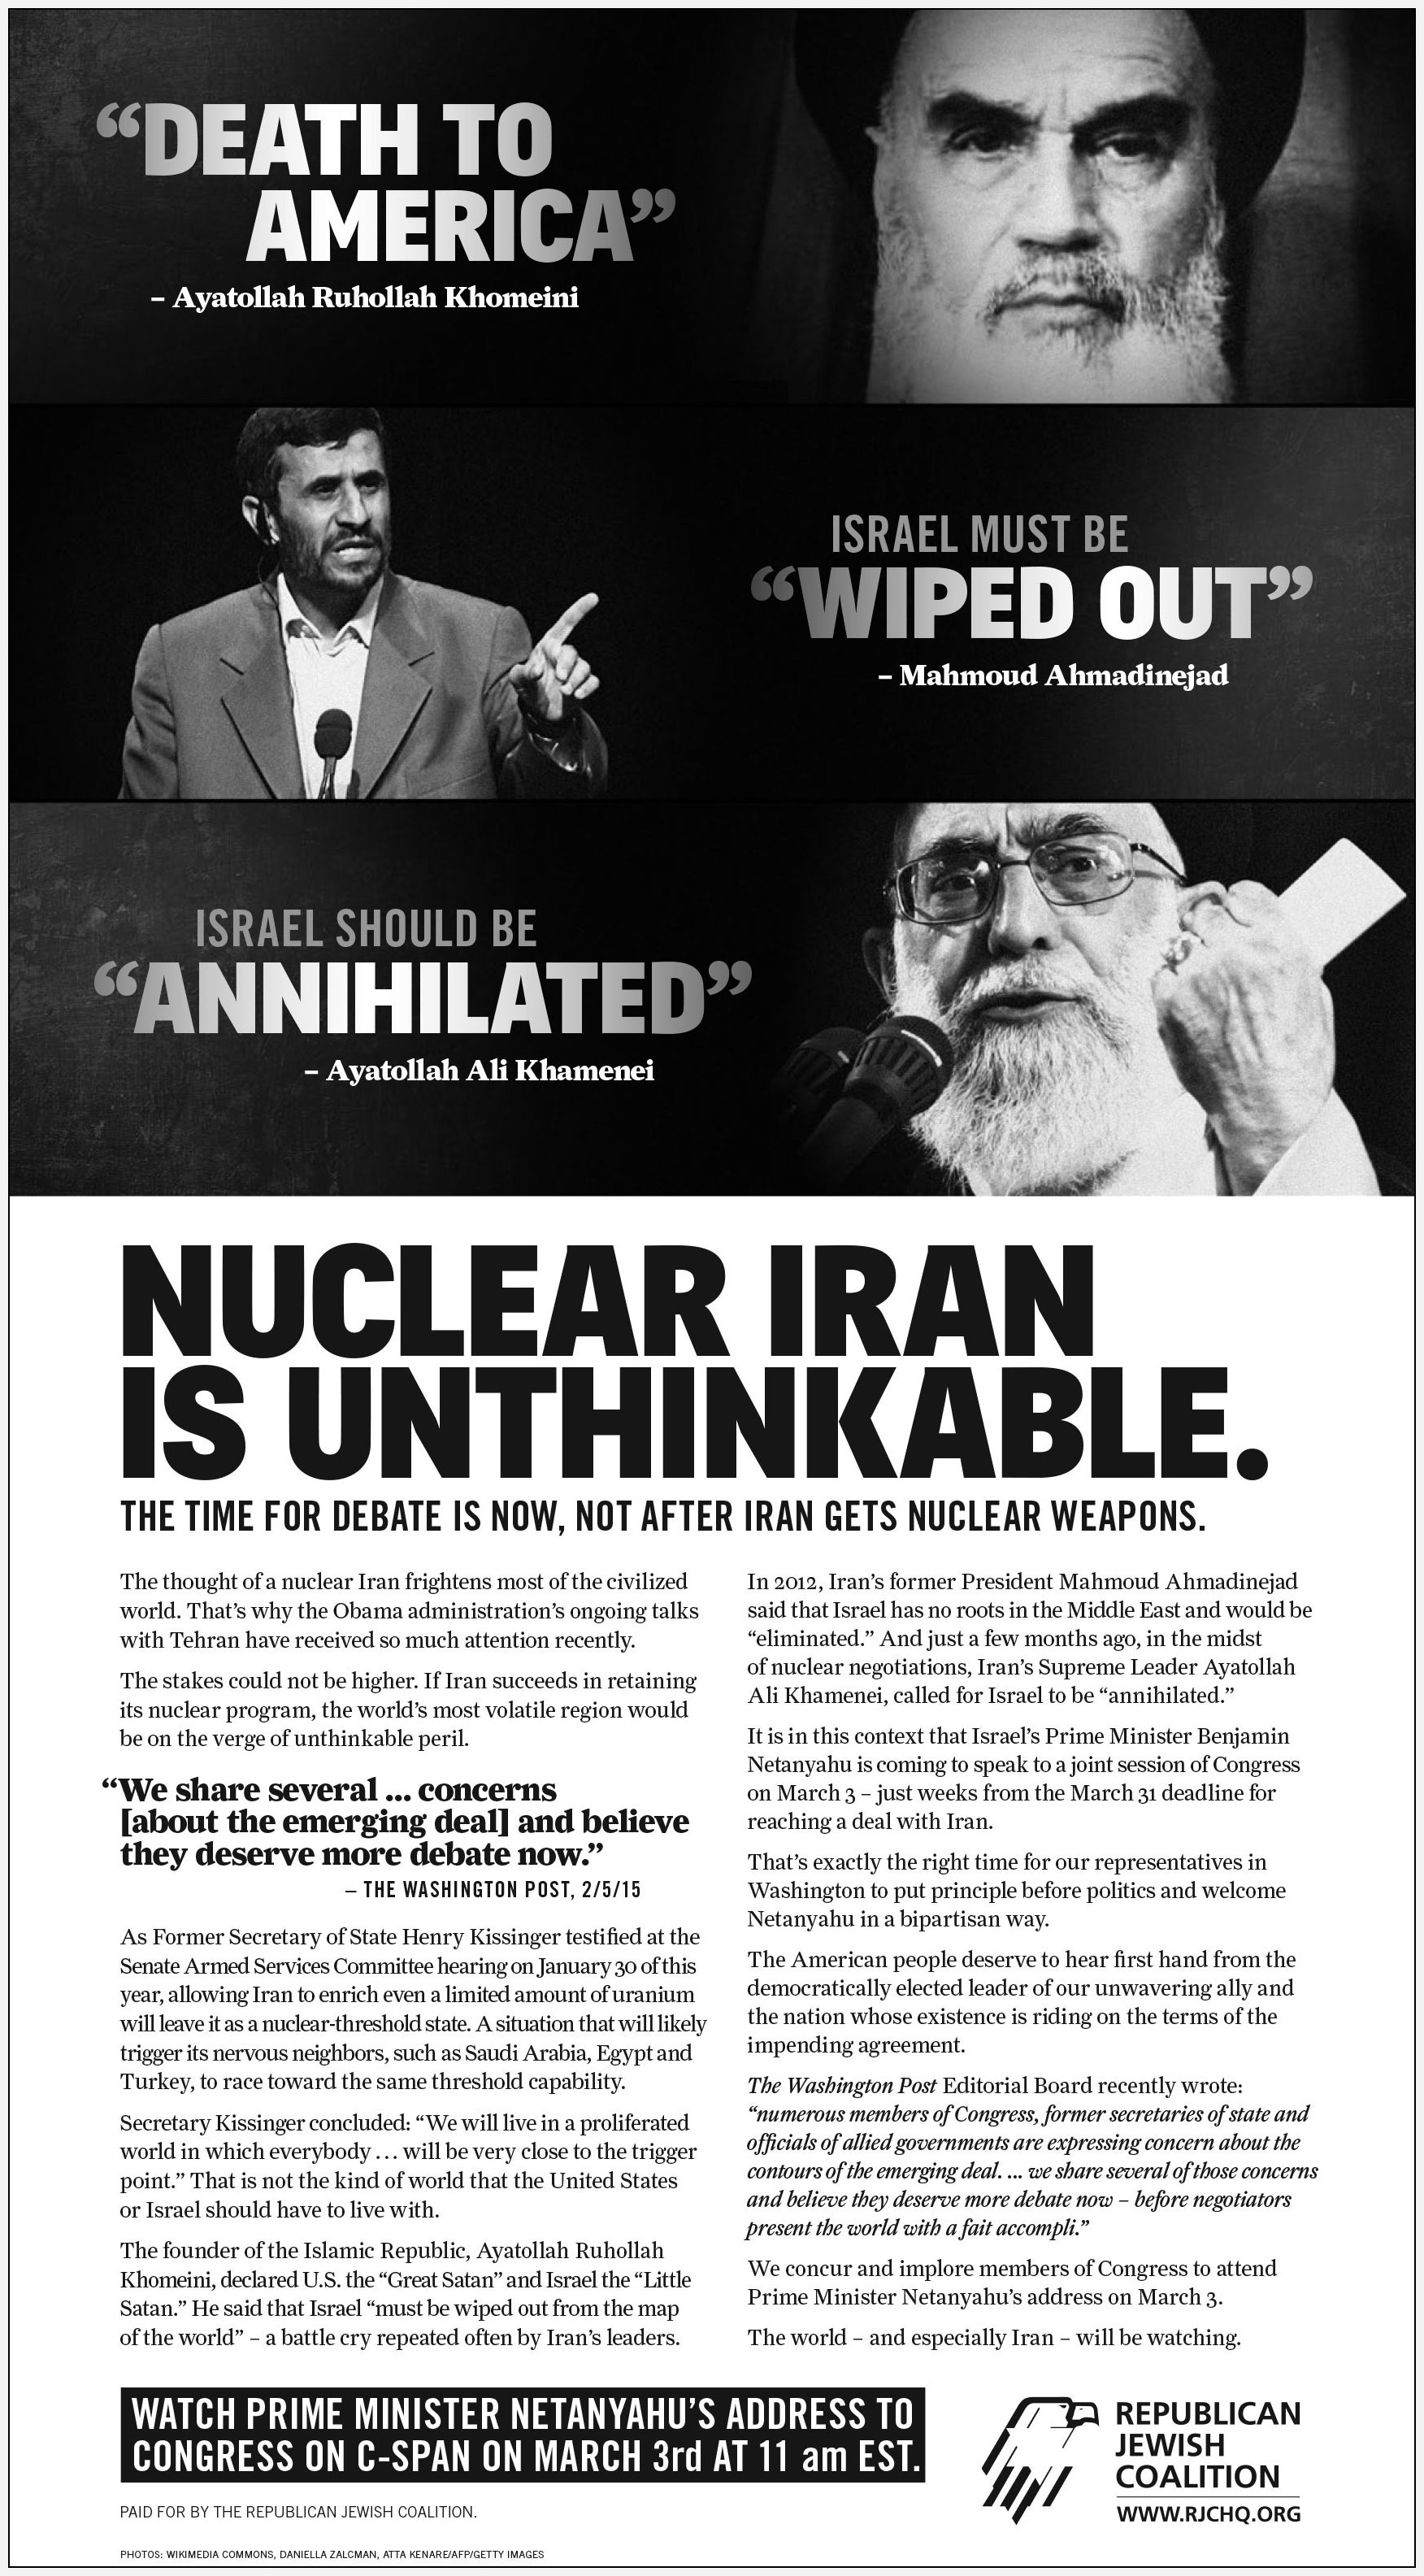 Republican Jewish Coalition - Unthinkable  Reed Award, Best Newspaper Ad for Public Affairs/Issue Advocacy Campaign